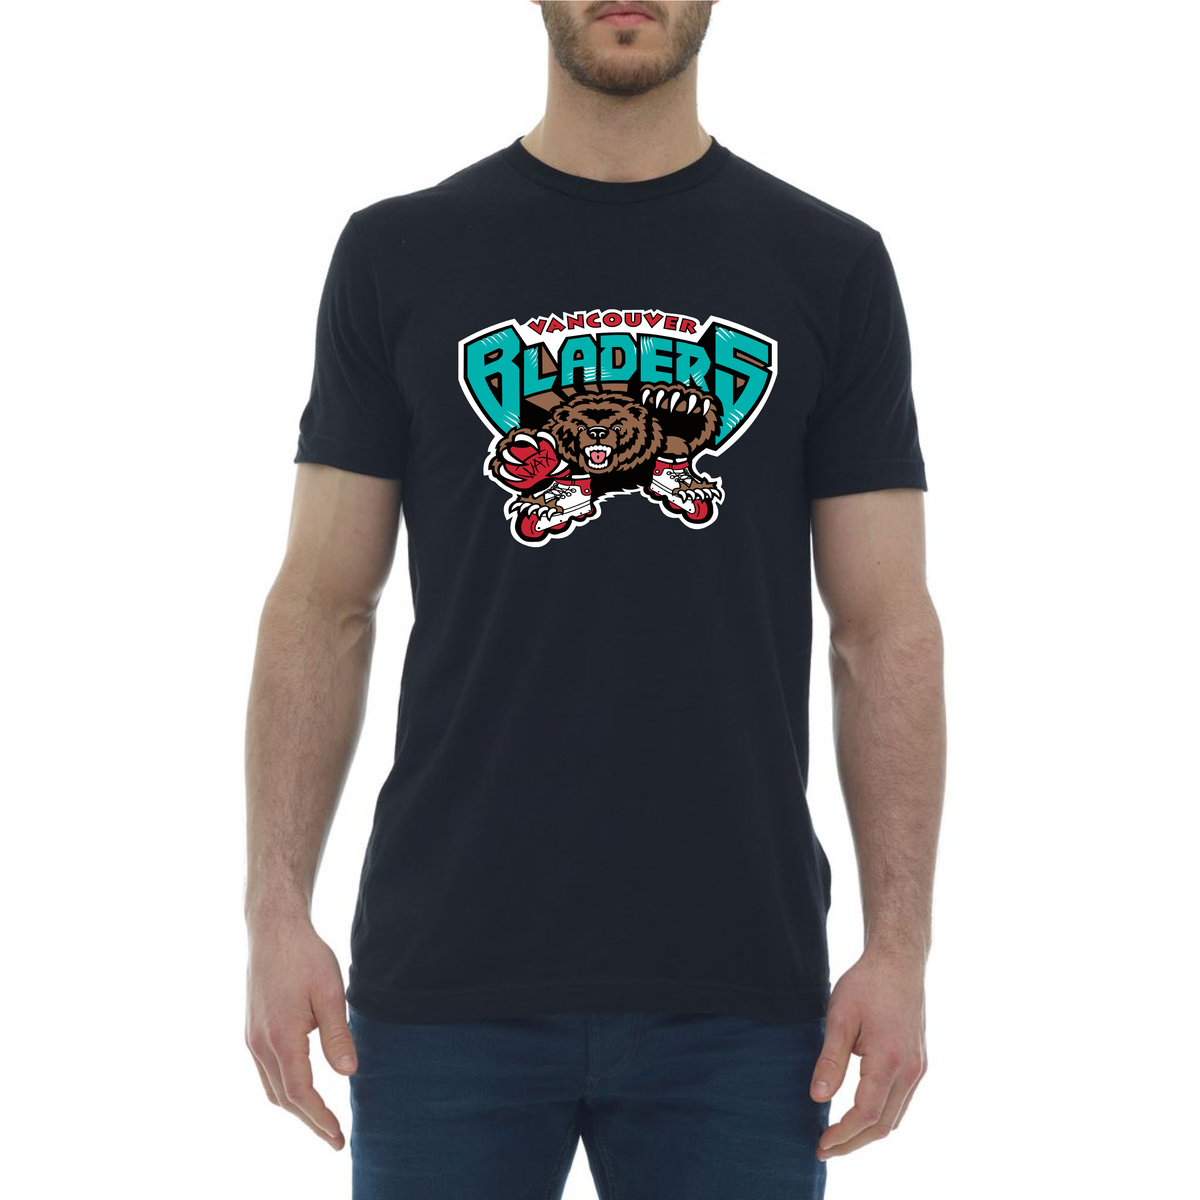 Image of Vancouver Bladers T-Shirt - Chuck Bailey Black